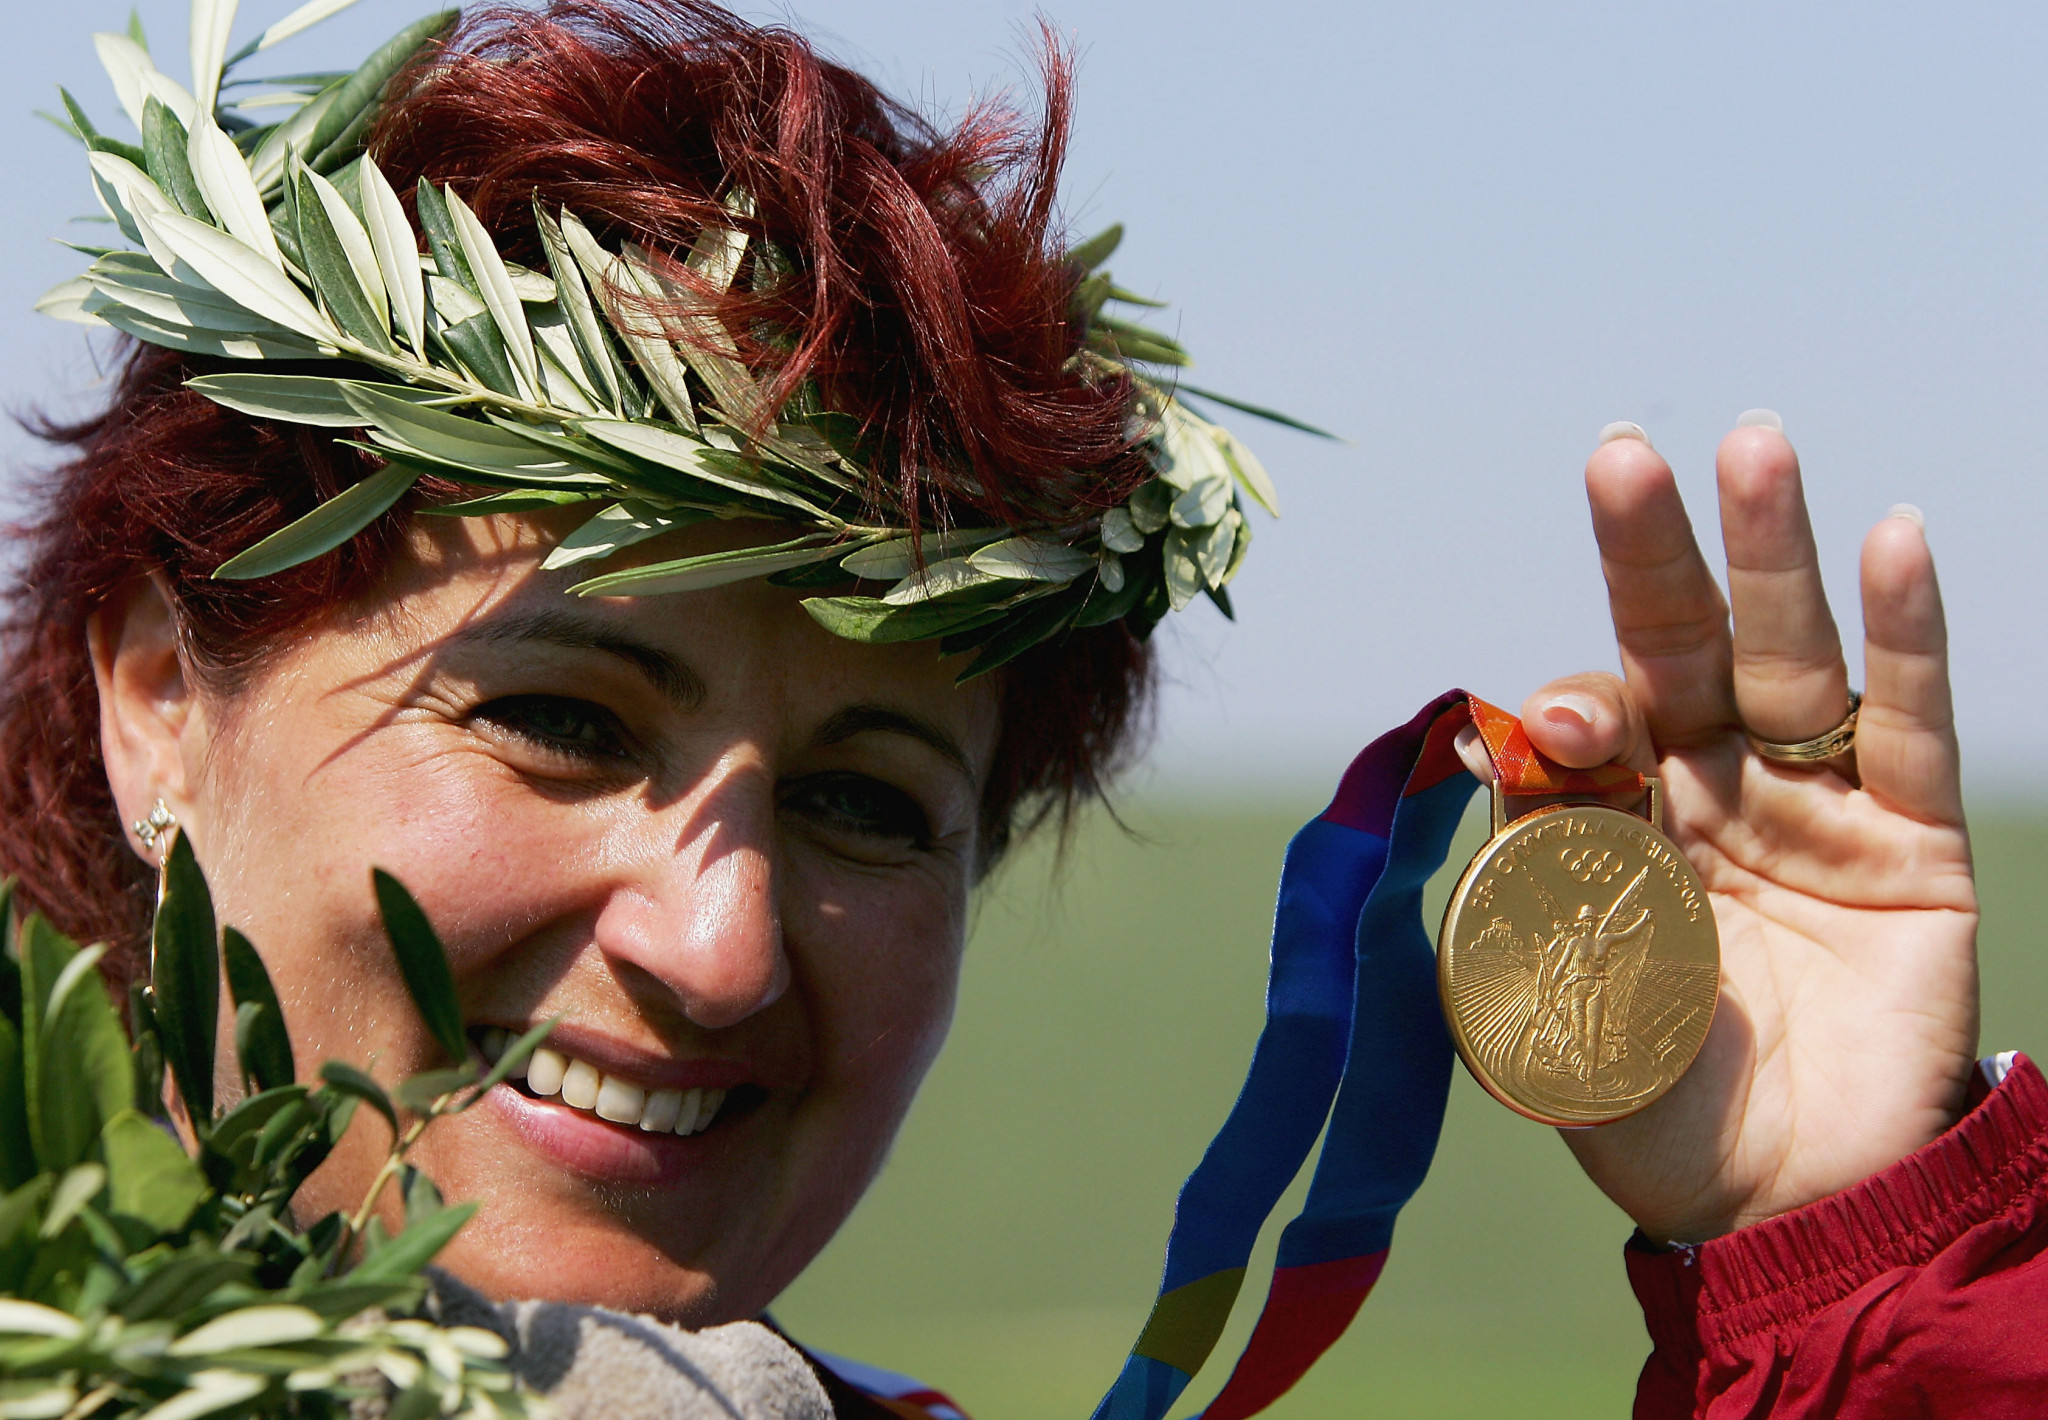 Hungarian Olympic shooting champion Igaly dies from COVID-19 aged 56